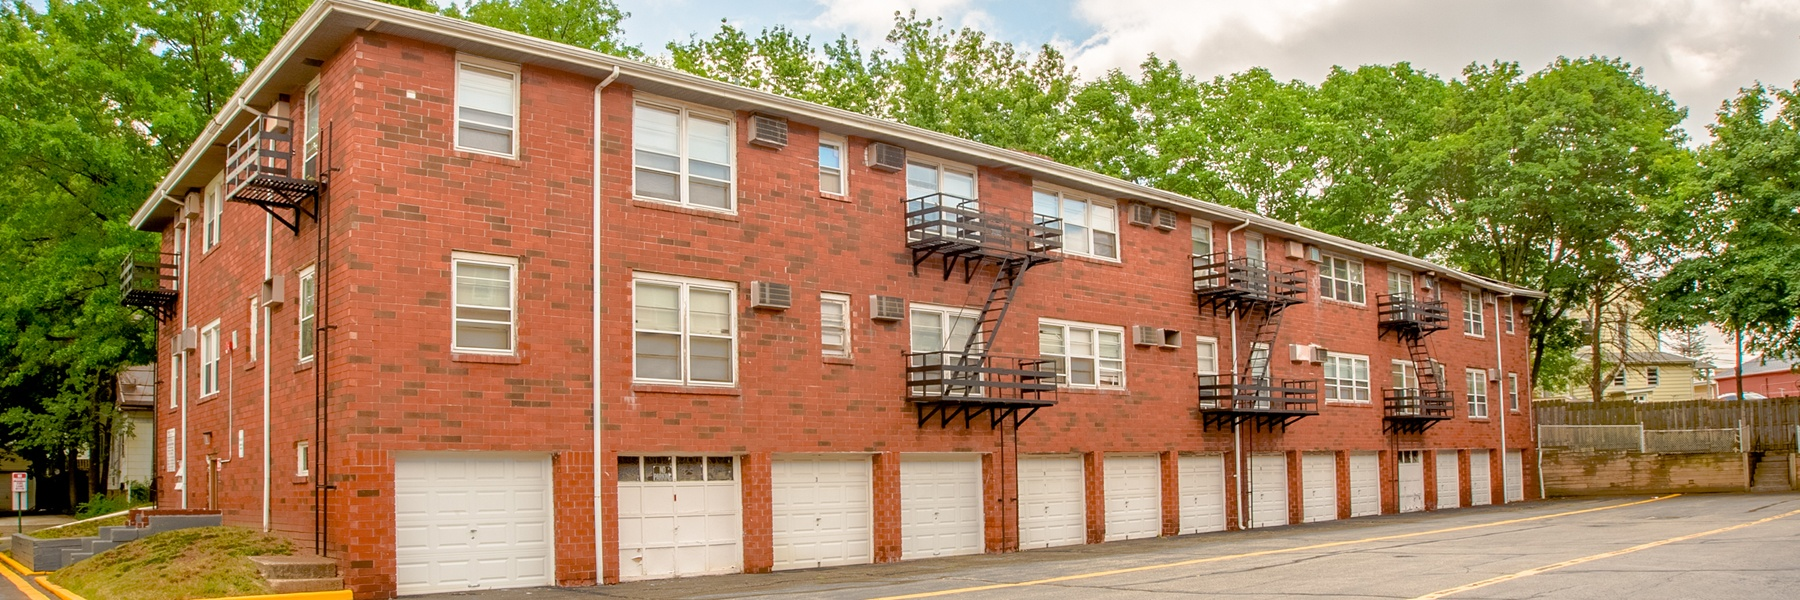 Placid Gardens Apartments For Rent in Highland Park, NJ